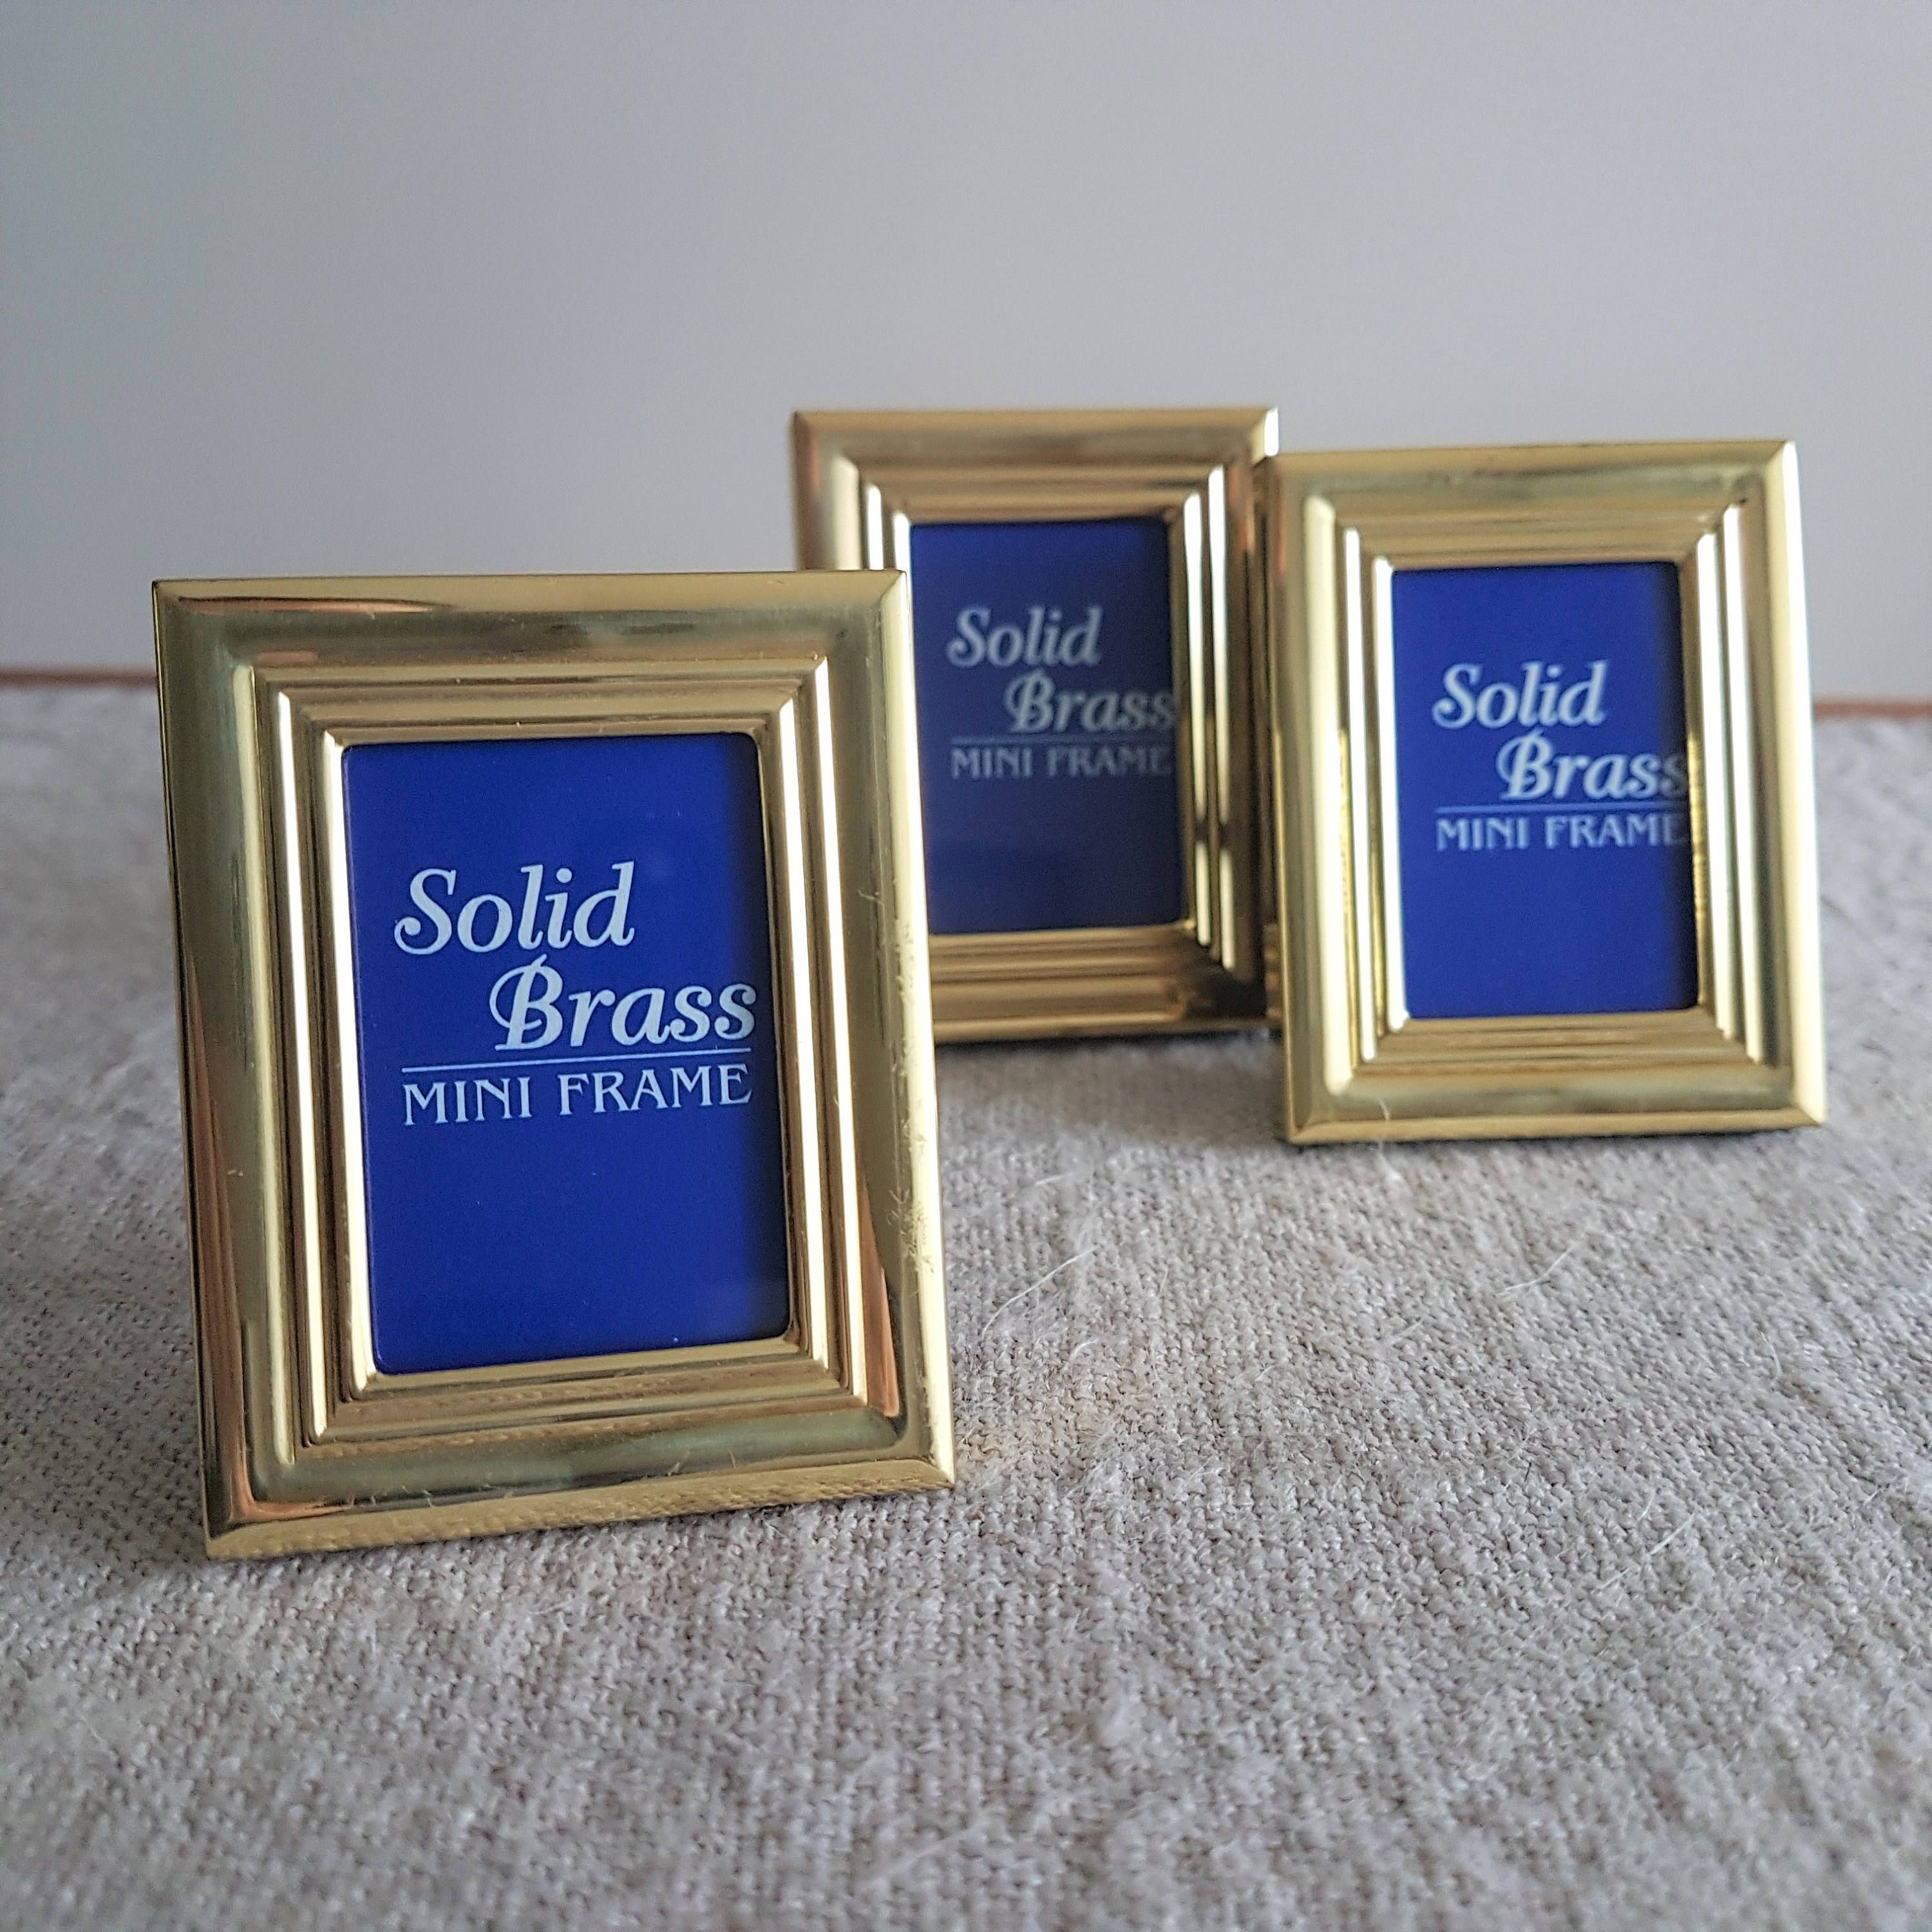 1 34 x 2 14 set of 3 miniature solid brass picture frames x set of 3 miniature solid brass picture frames wallet size photos gold tone metal rectangule retro small mini by bluechickenvintage on etsy jeuxipadfo Image collections